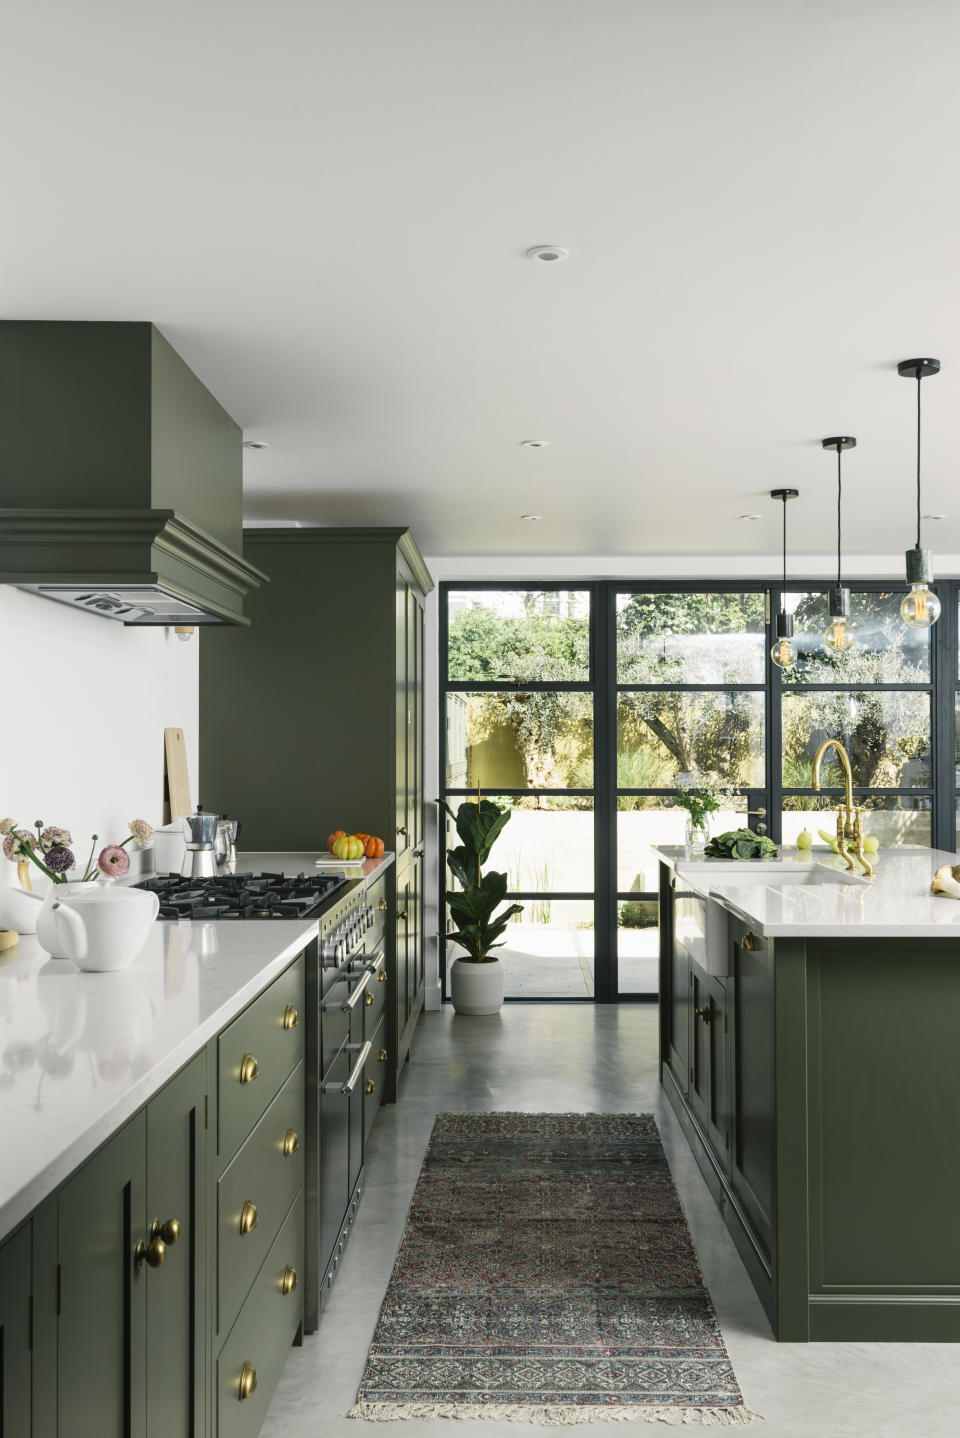 Green light shaker kitchen with Crittal-style windows